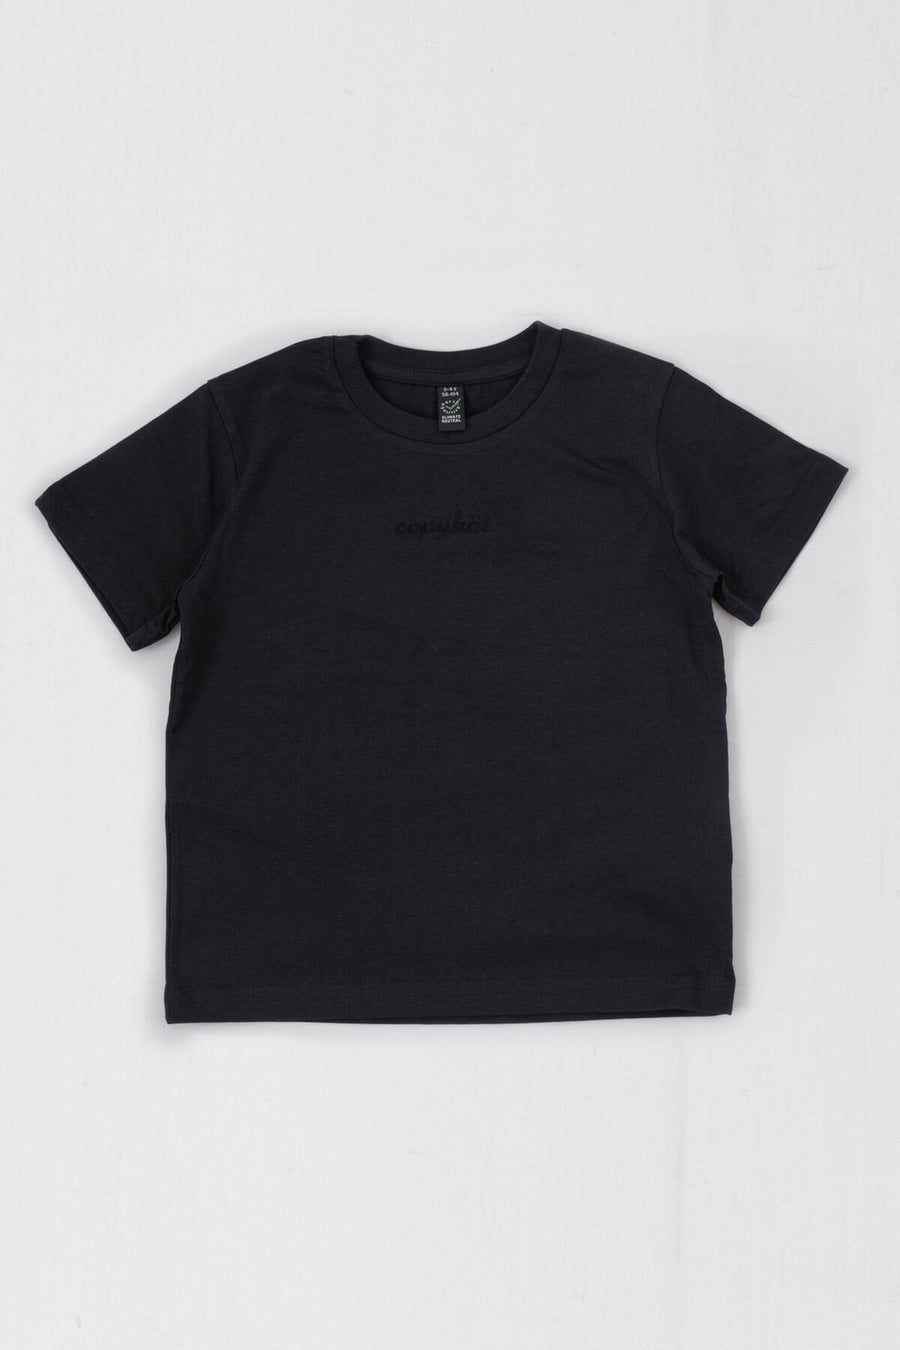 COPYKÄT Junior classic jersey t-shirt 3-4 YRS - Black